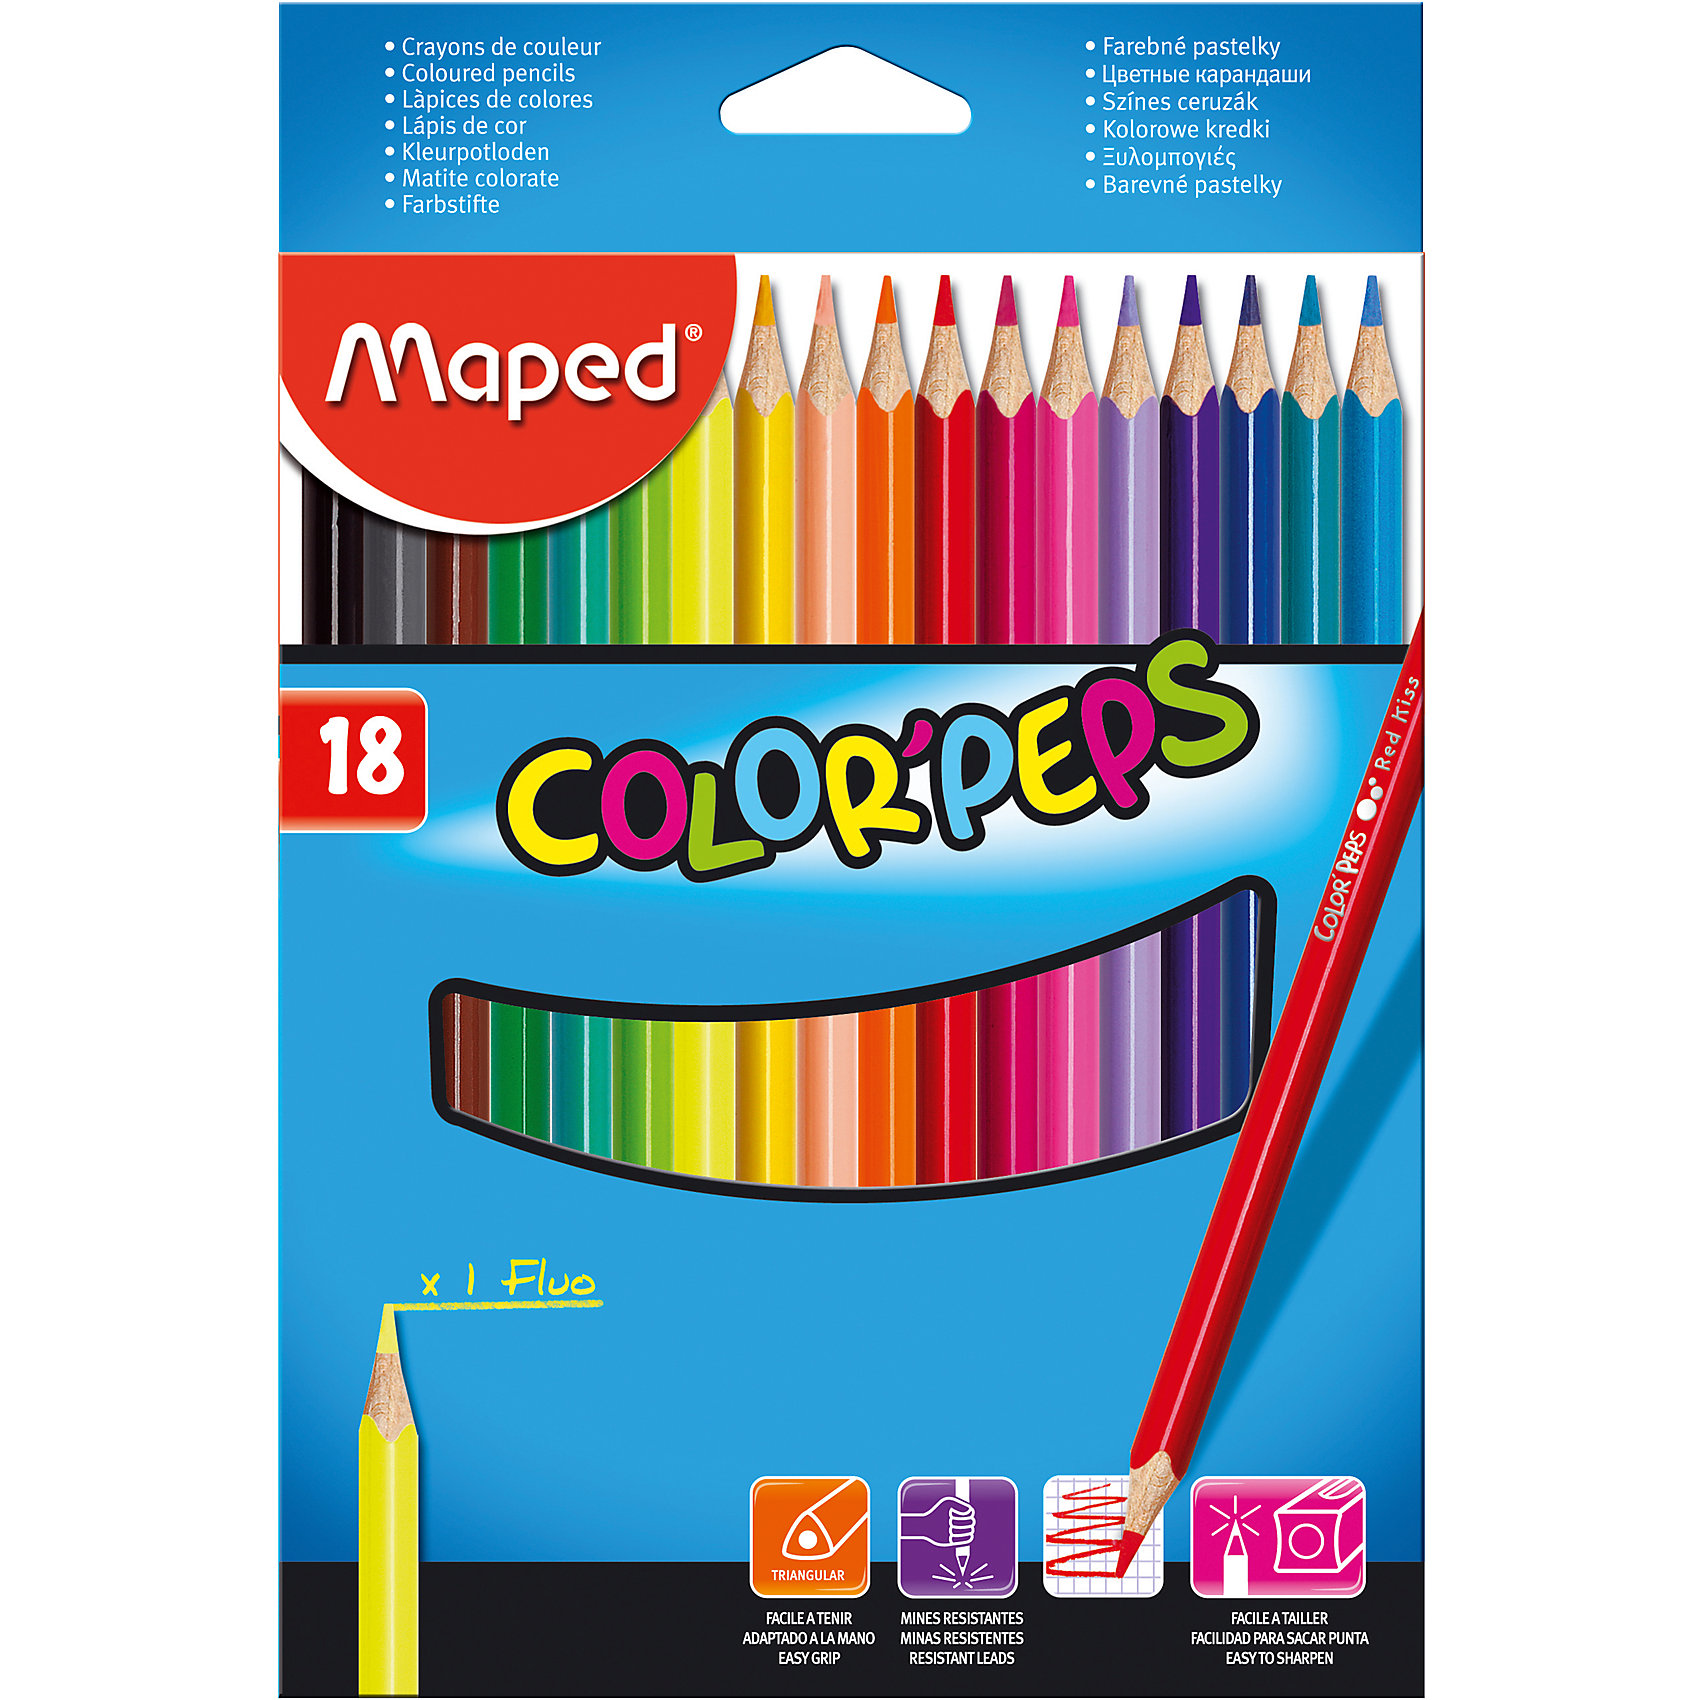 ����� ������� ���������� COLORPEPS, 18 ��. (-)